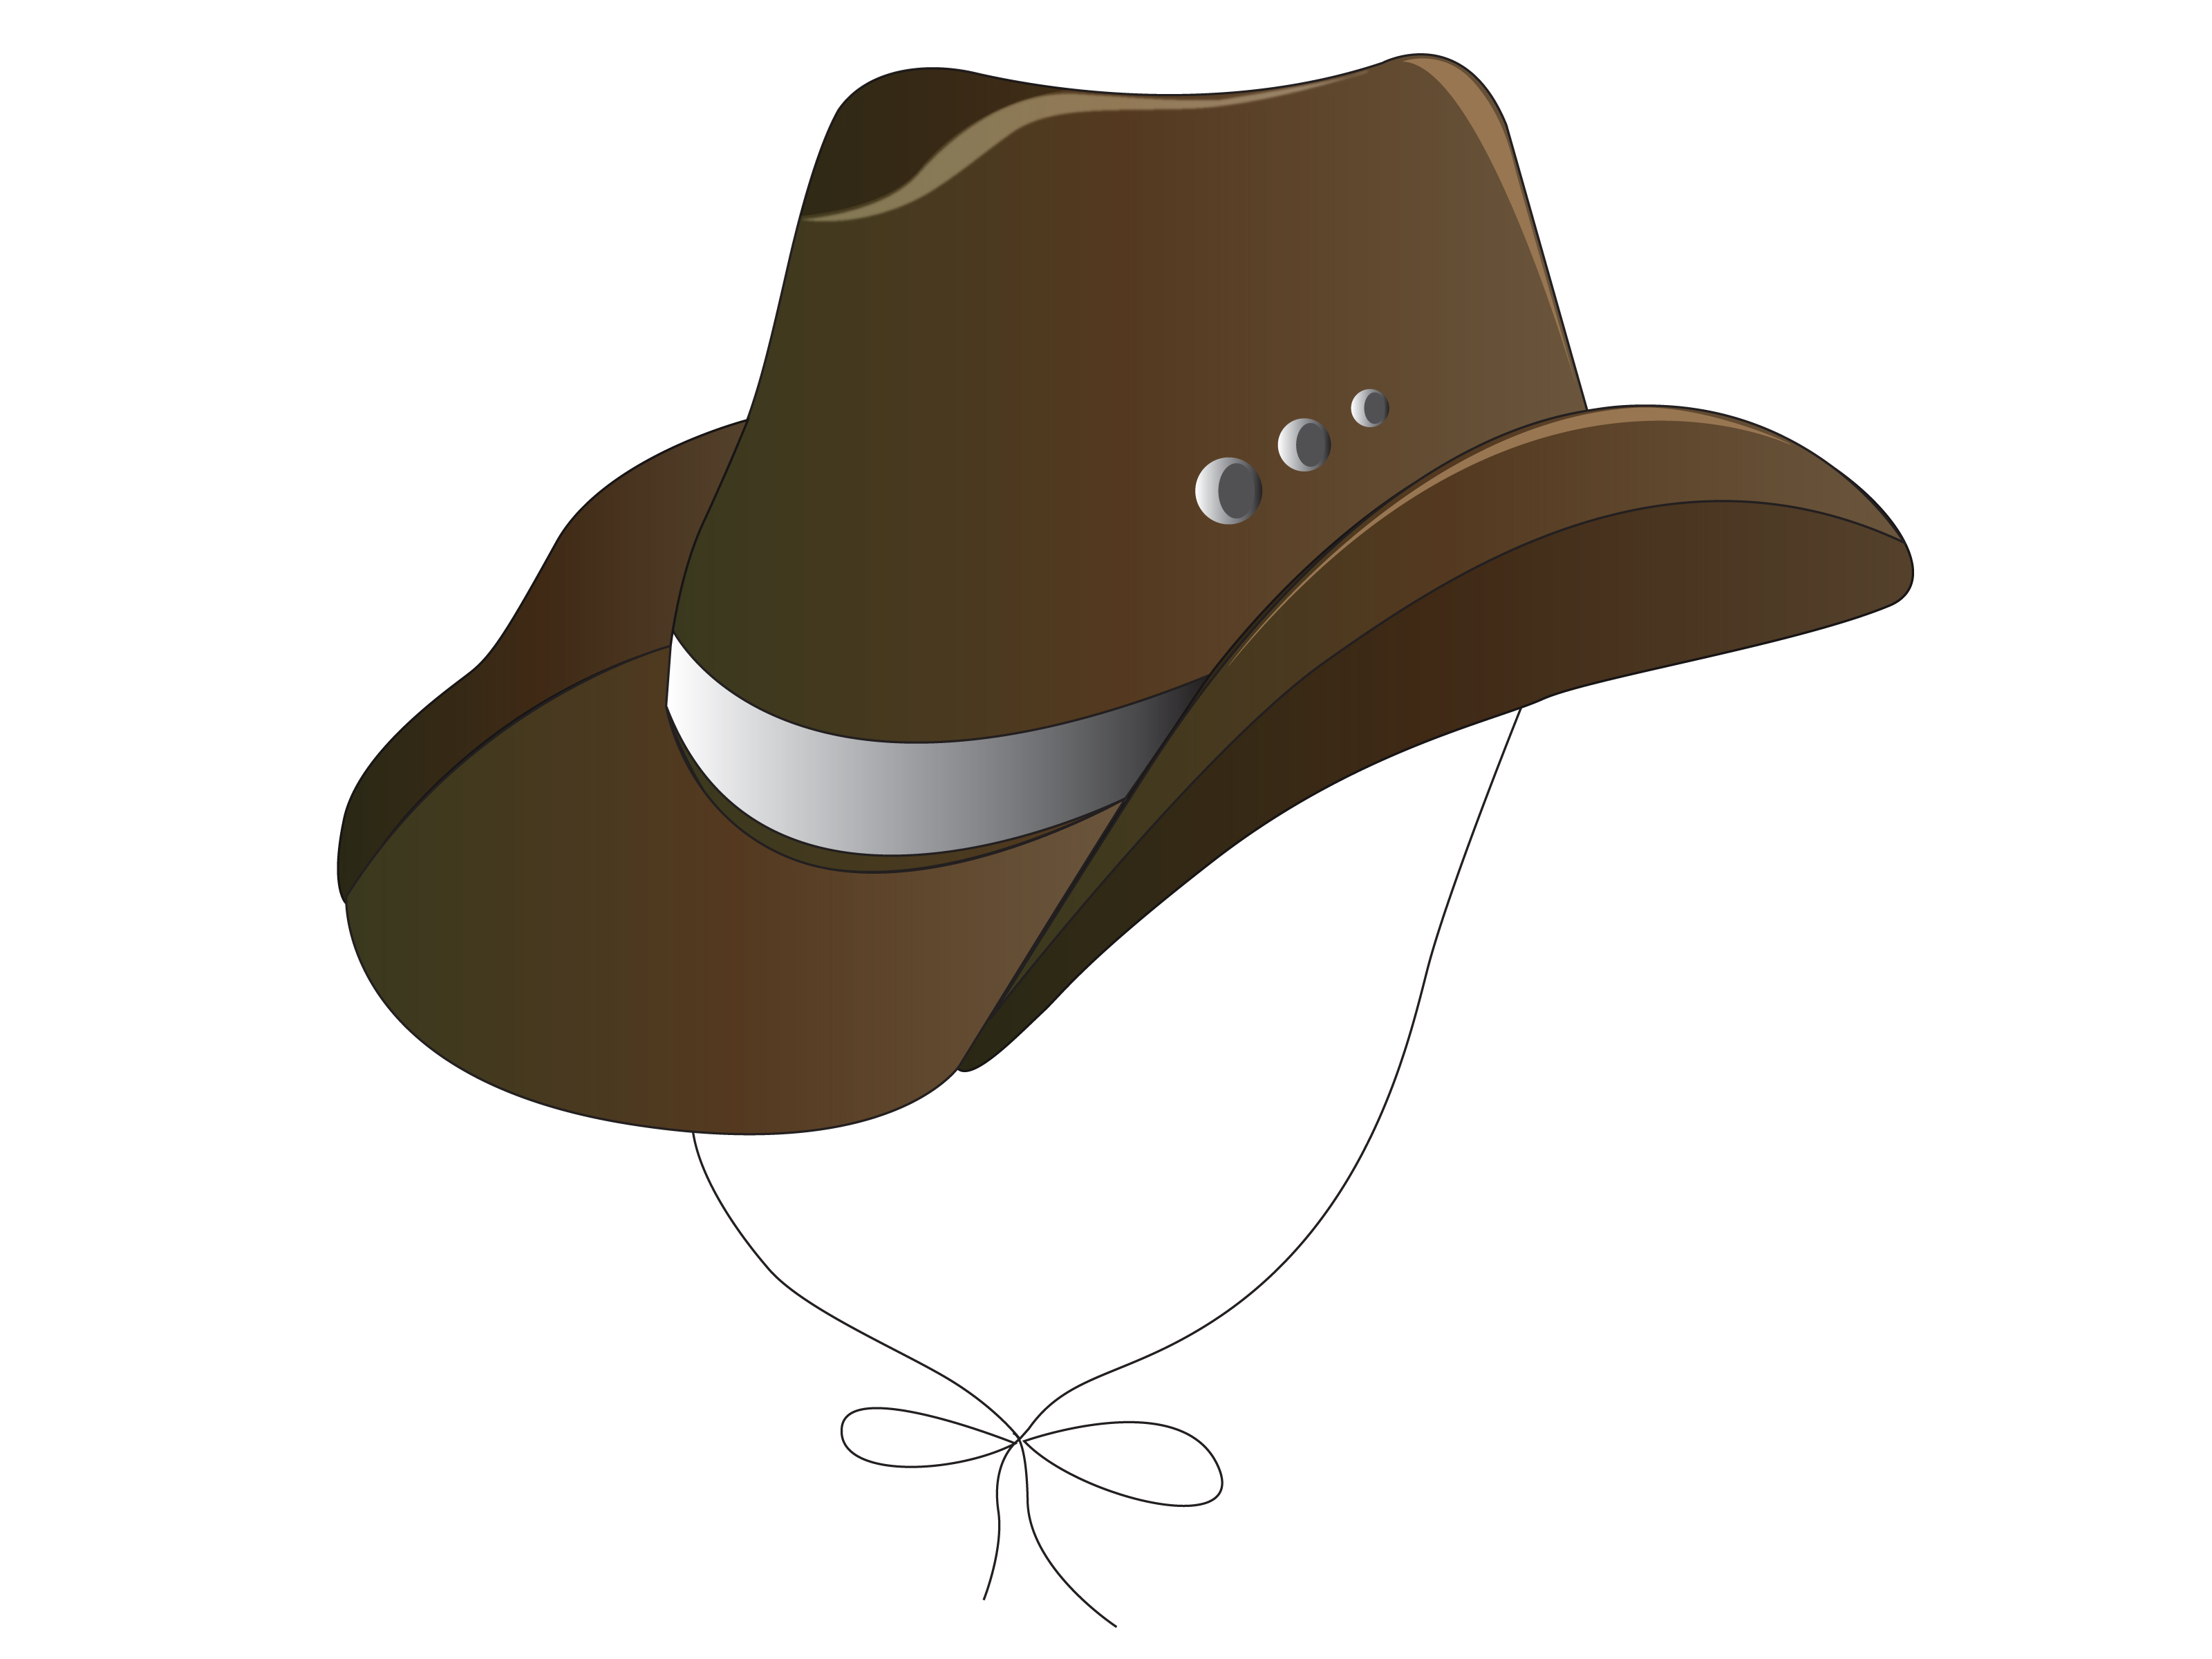 3200x2400 How To Draw A Cowboy Hat In Adobe Illustrator Cs3 8 Steps